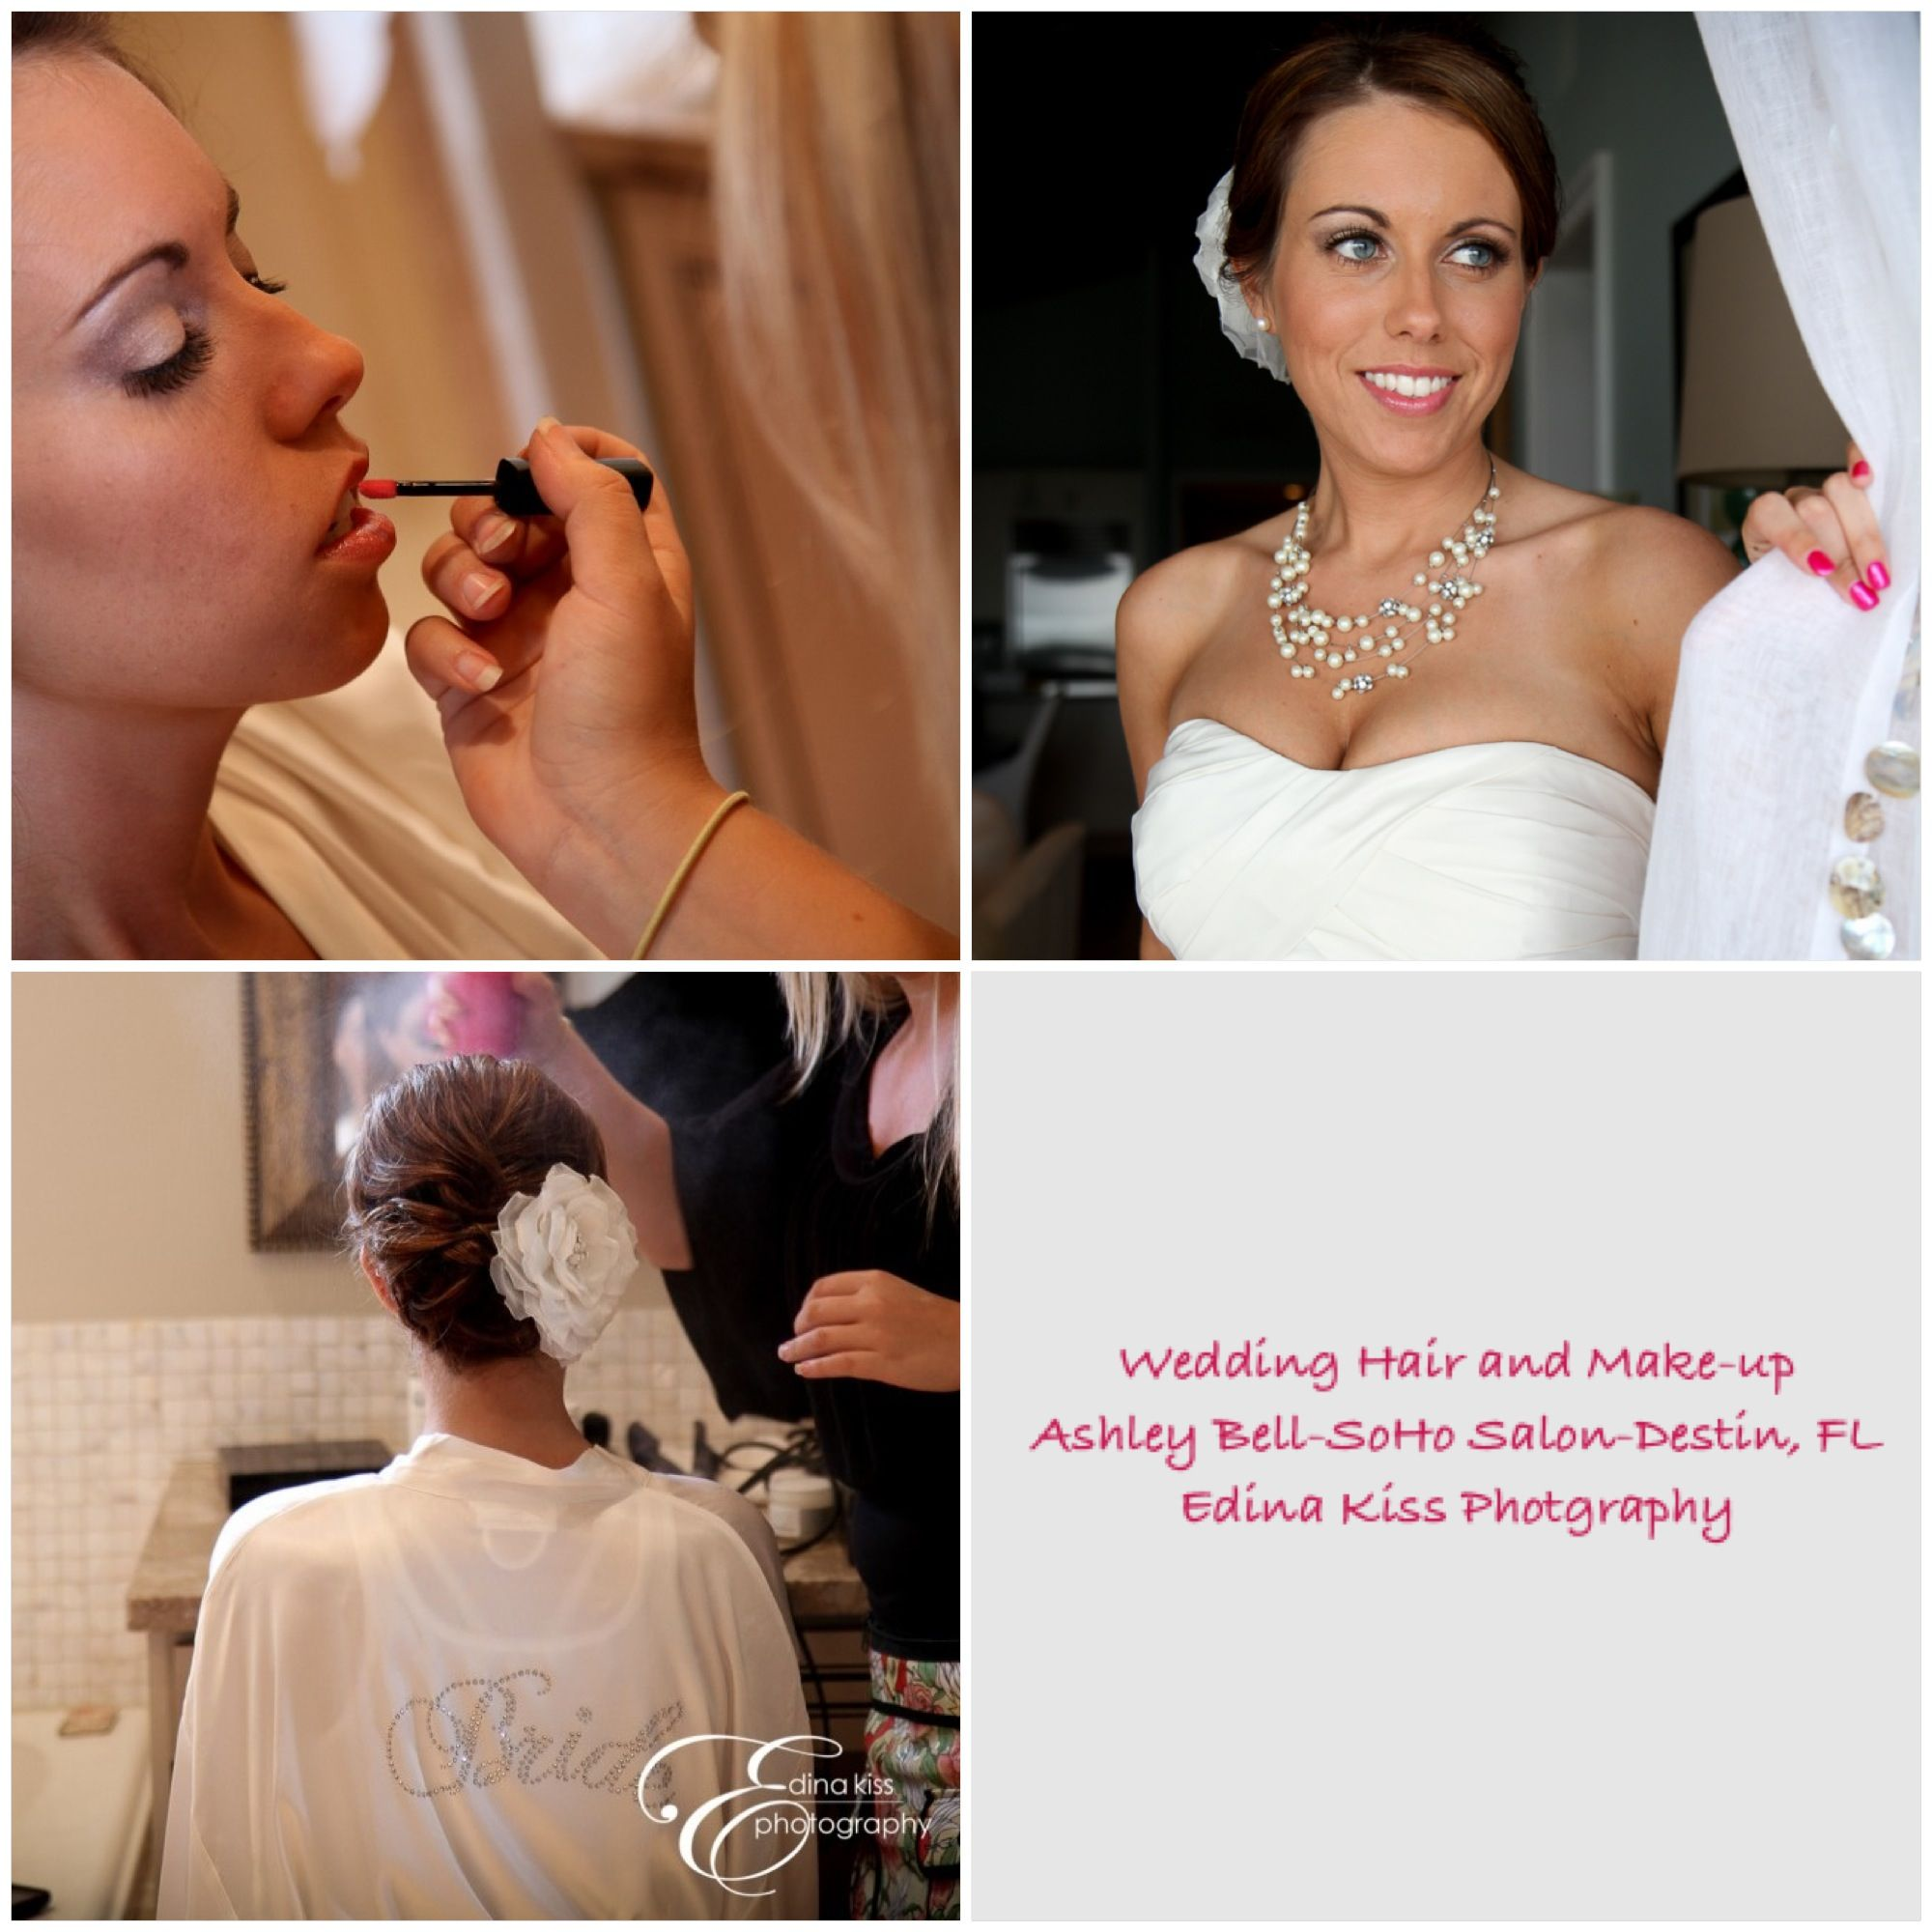 wedding hair and make-up by ashley bell, soho salon, destin